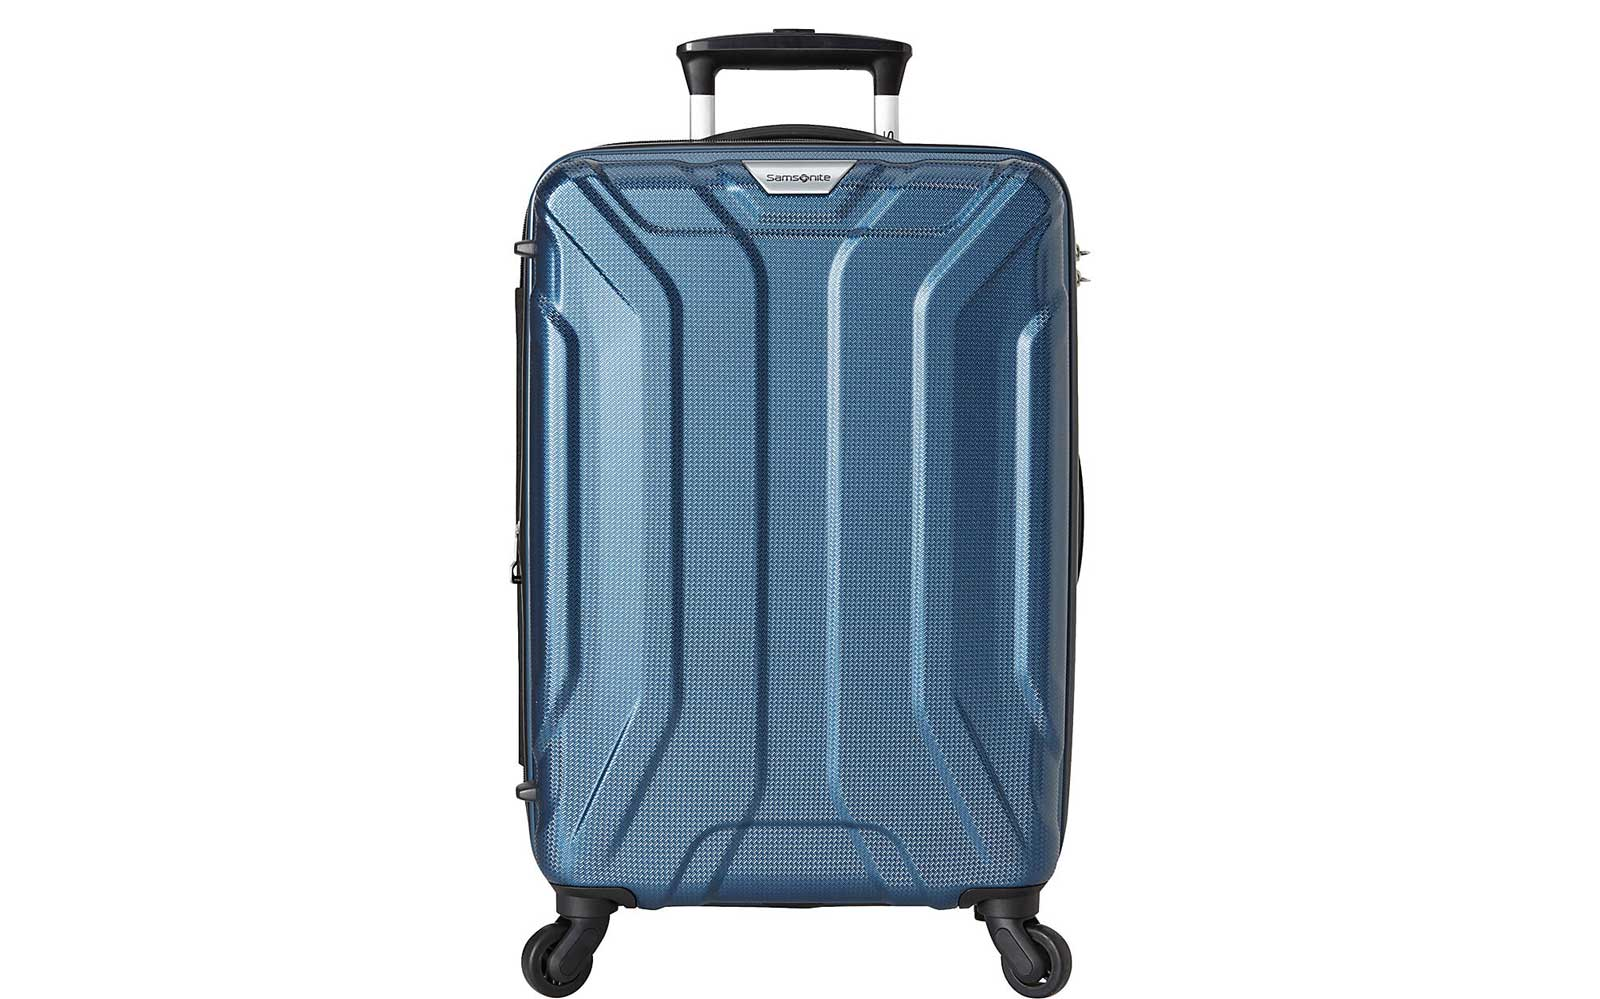 Light Blue Hardside Carry-on Suitcase